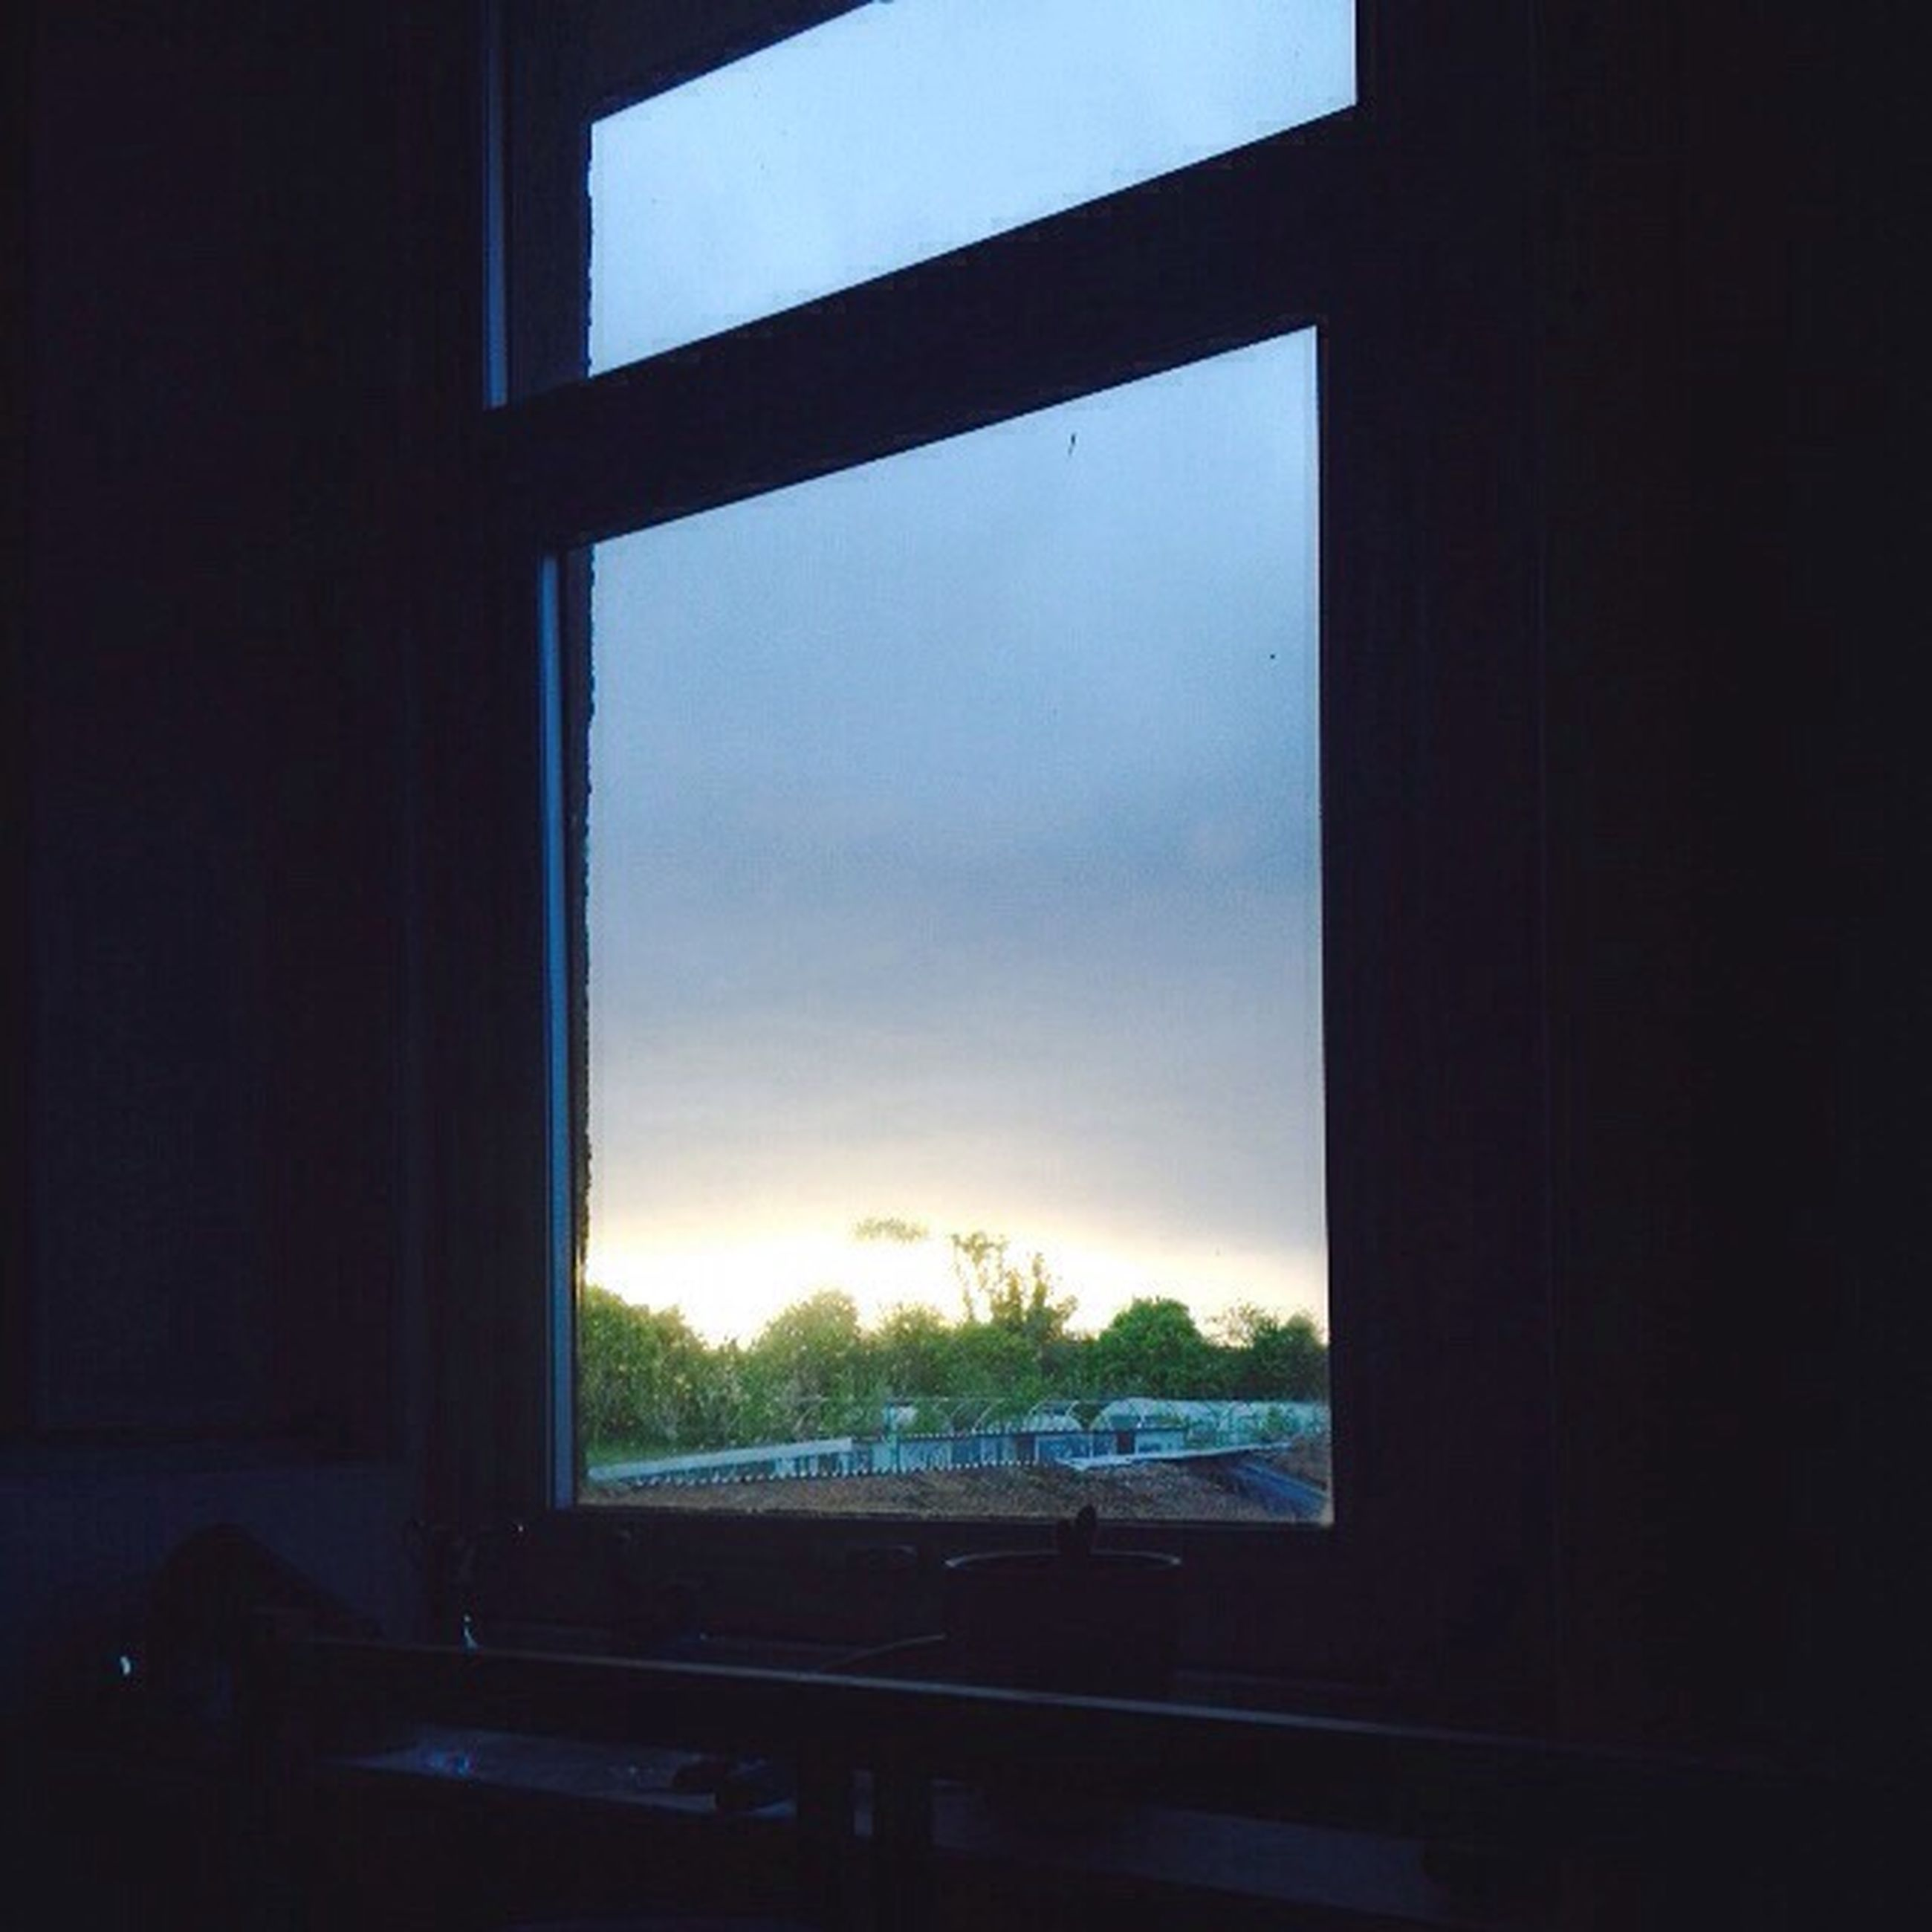 window, indoors, glass - material, transparent, sky, silhouette, looking through window, sunset, home interior, house, tree, built structure, dark, nature, curtain, cloud, cloud - sky, architecture, no people, window sill